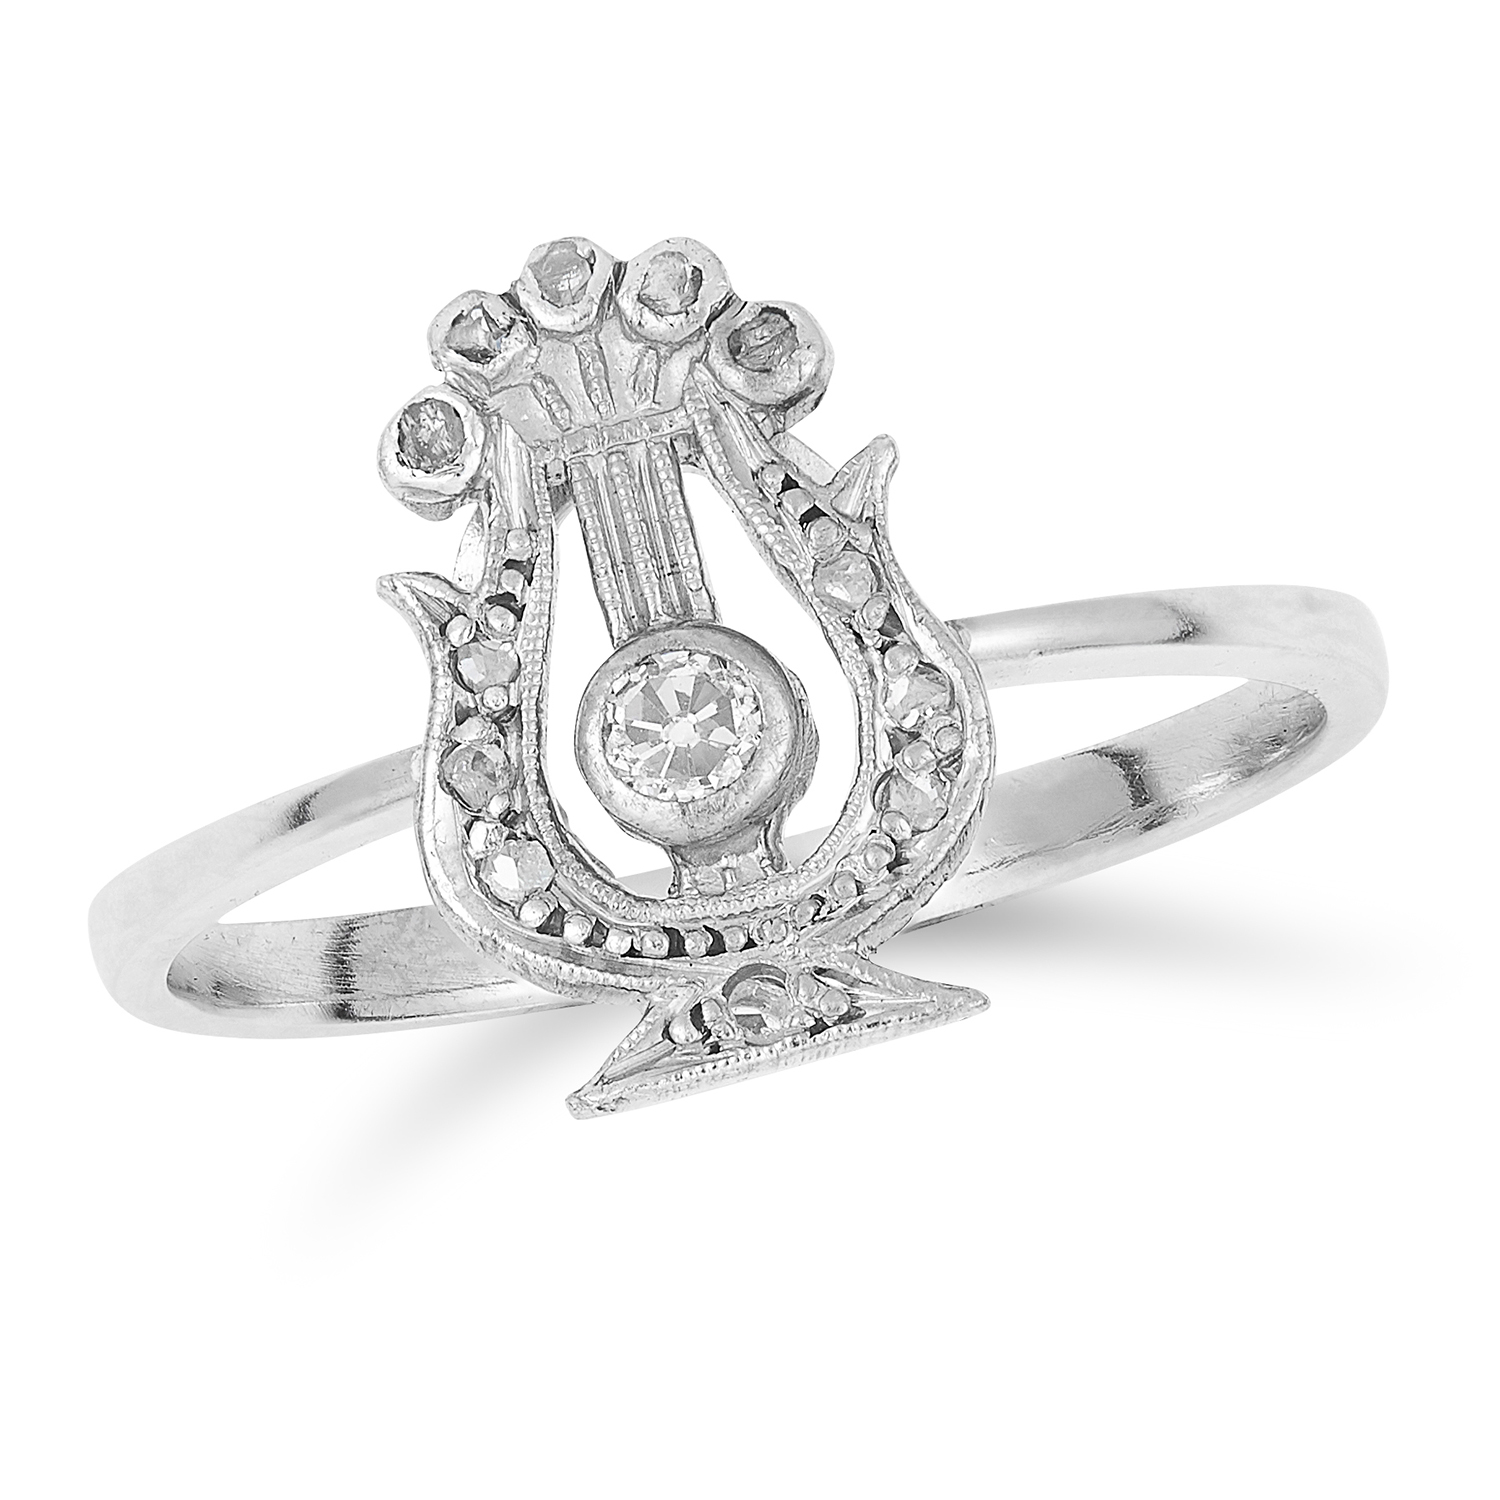 ANTIQUE DIAMOND HARP RING in 18ct white gold or platinum, set with round and rose cut diamonds,